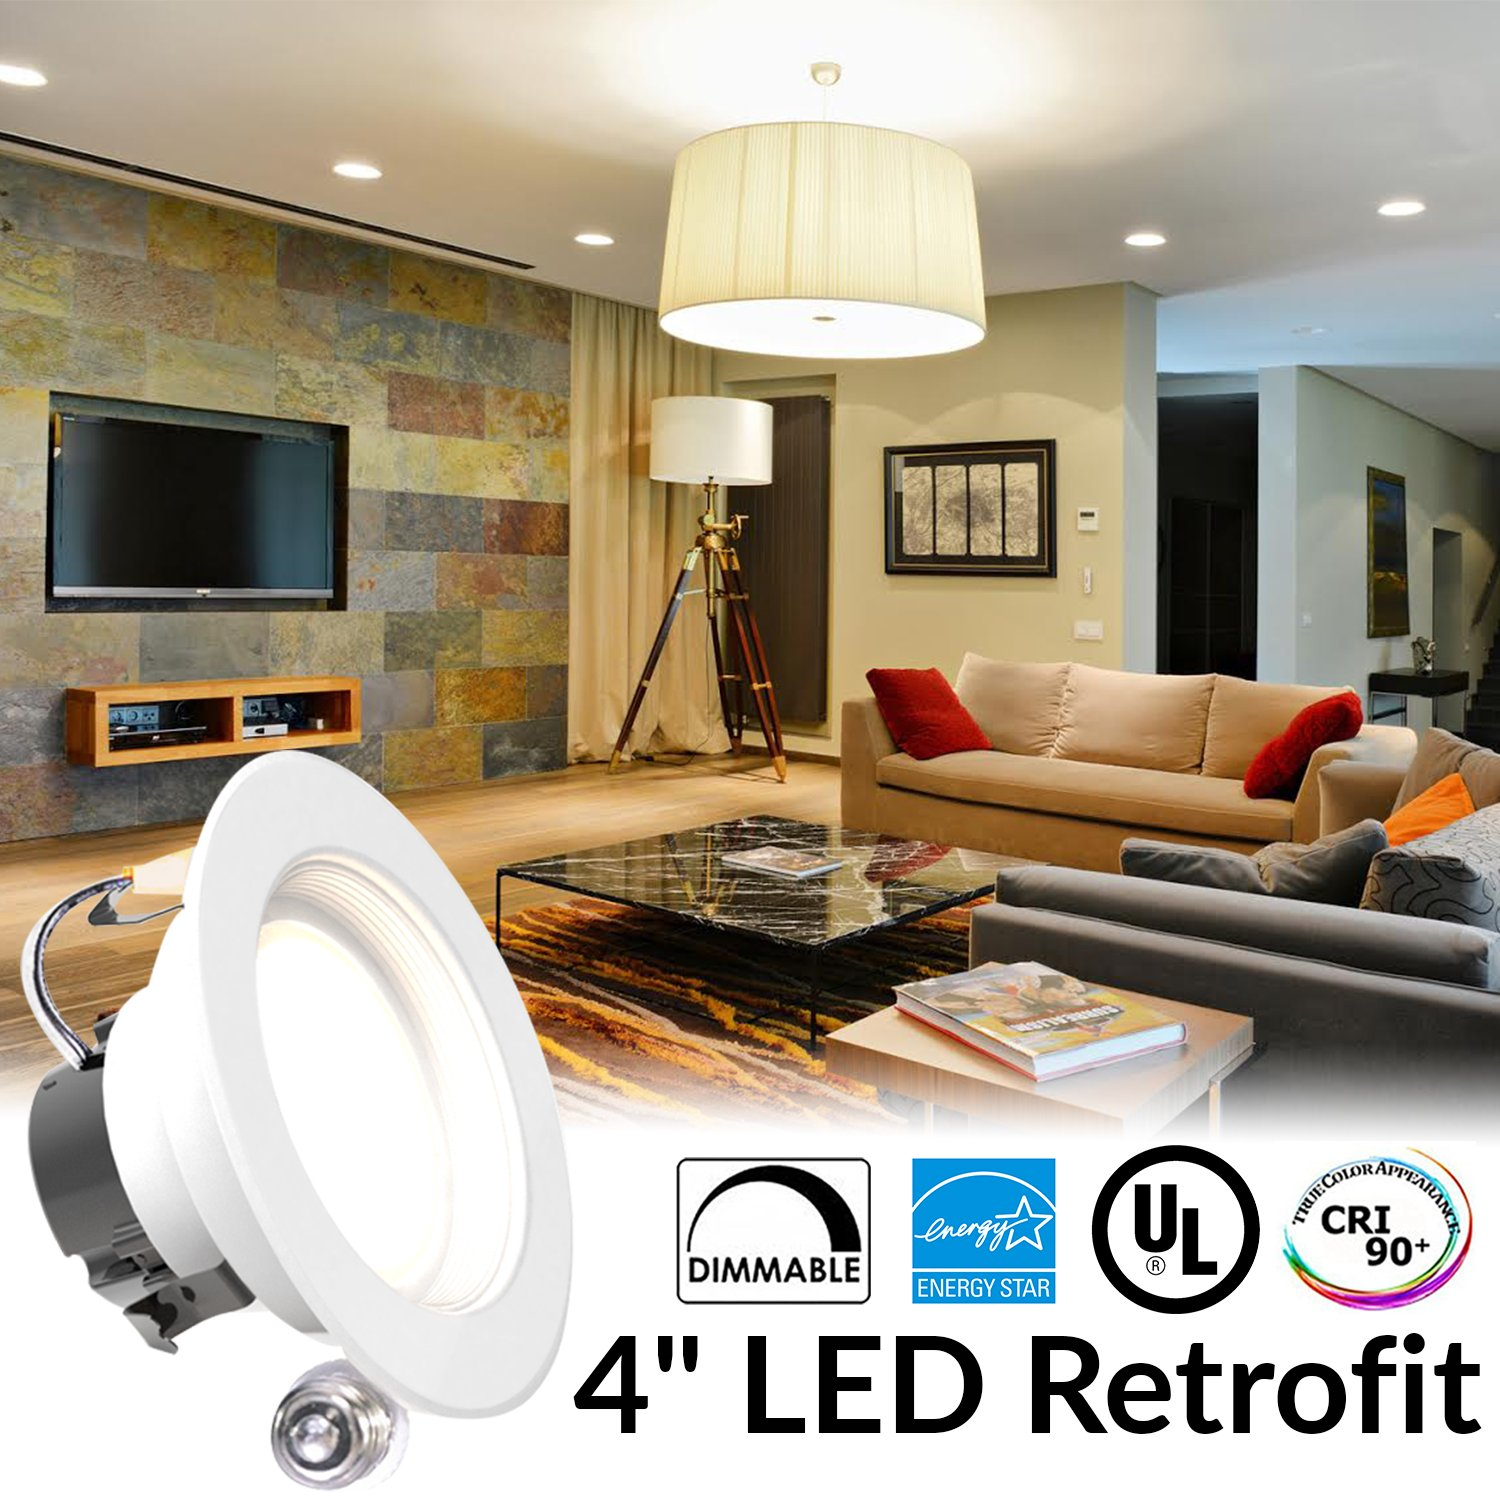 11watt 4 inch energy star ul listed dimmable led downlight